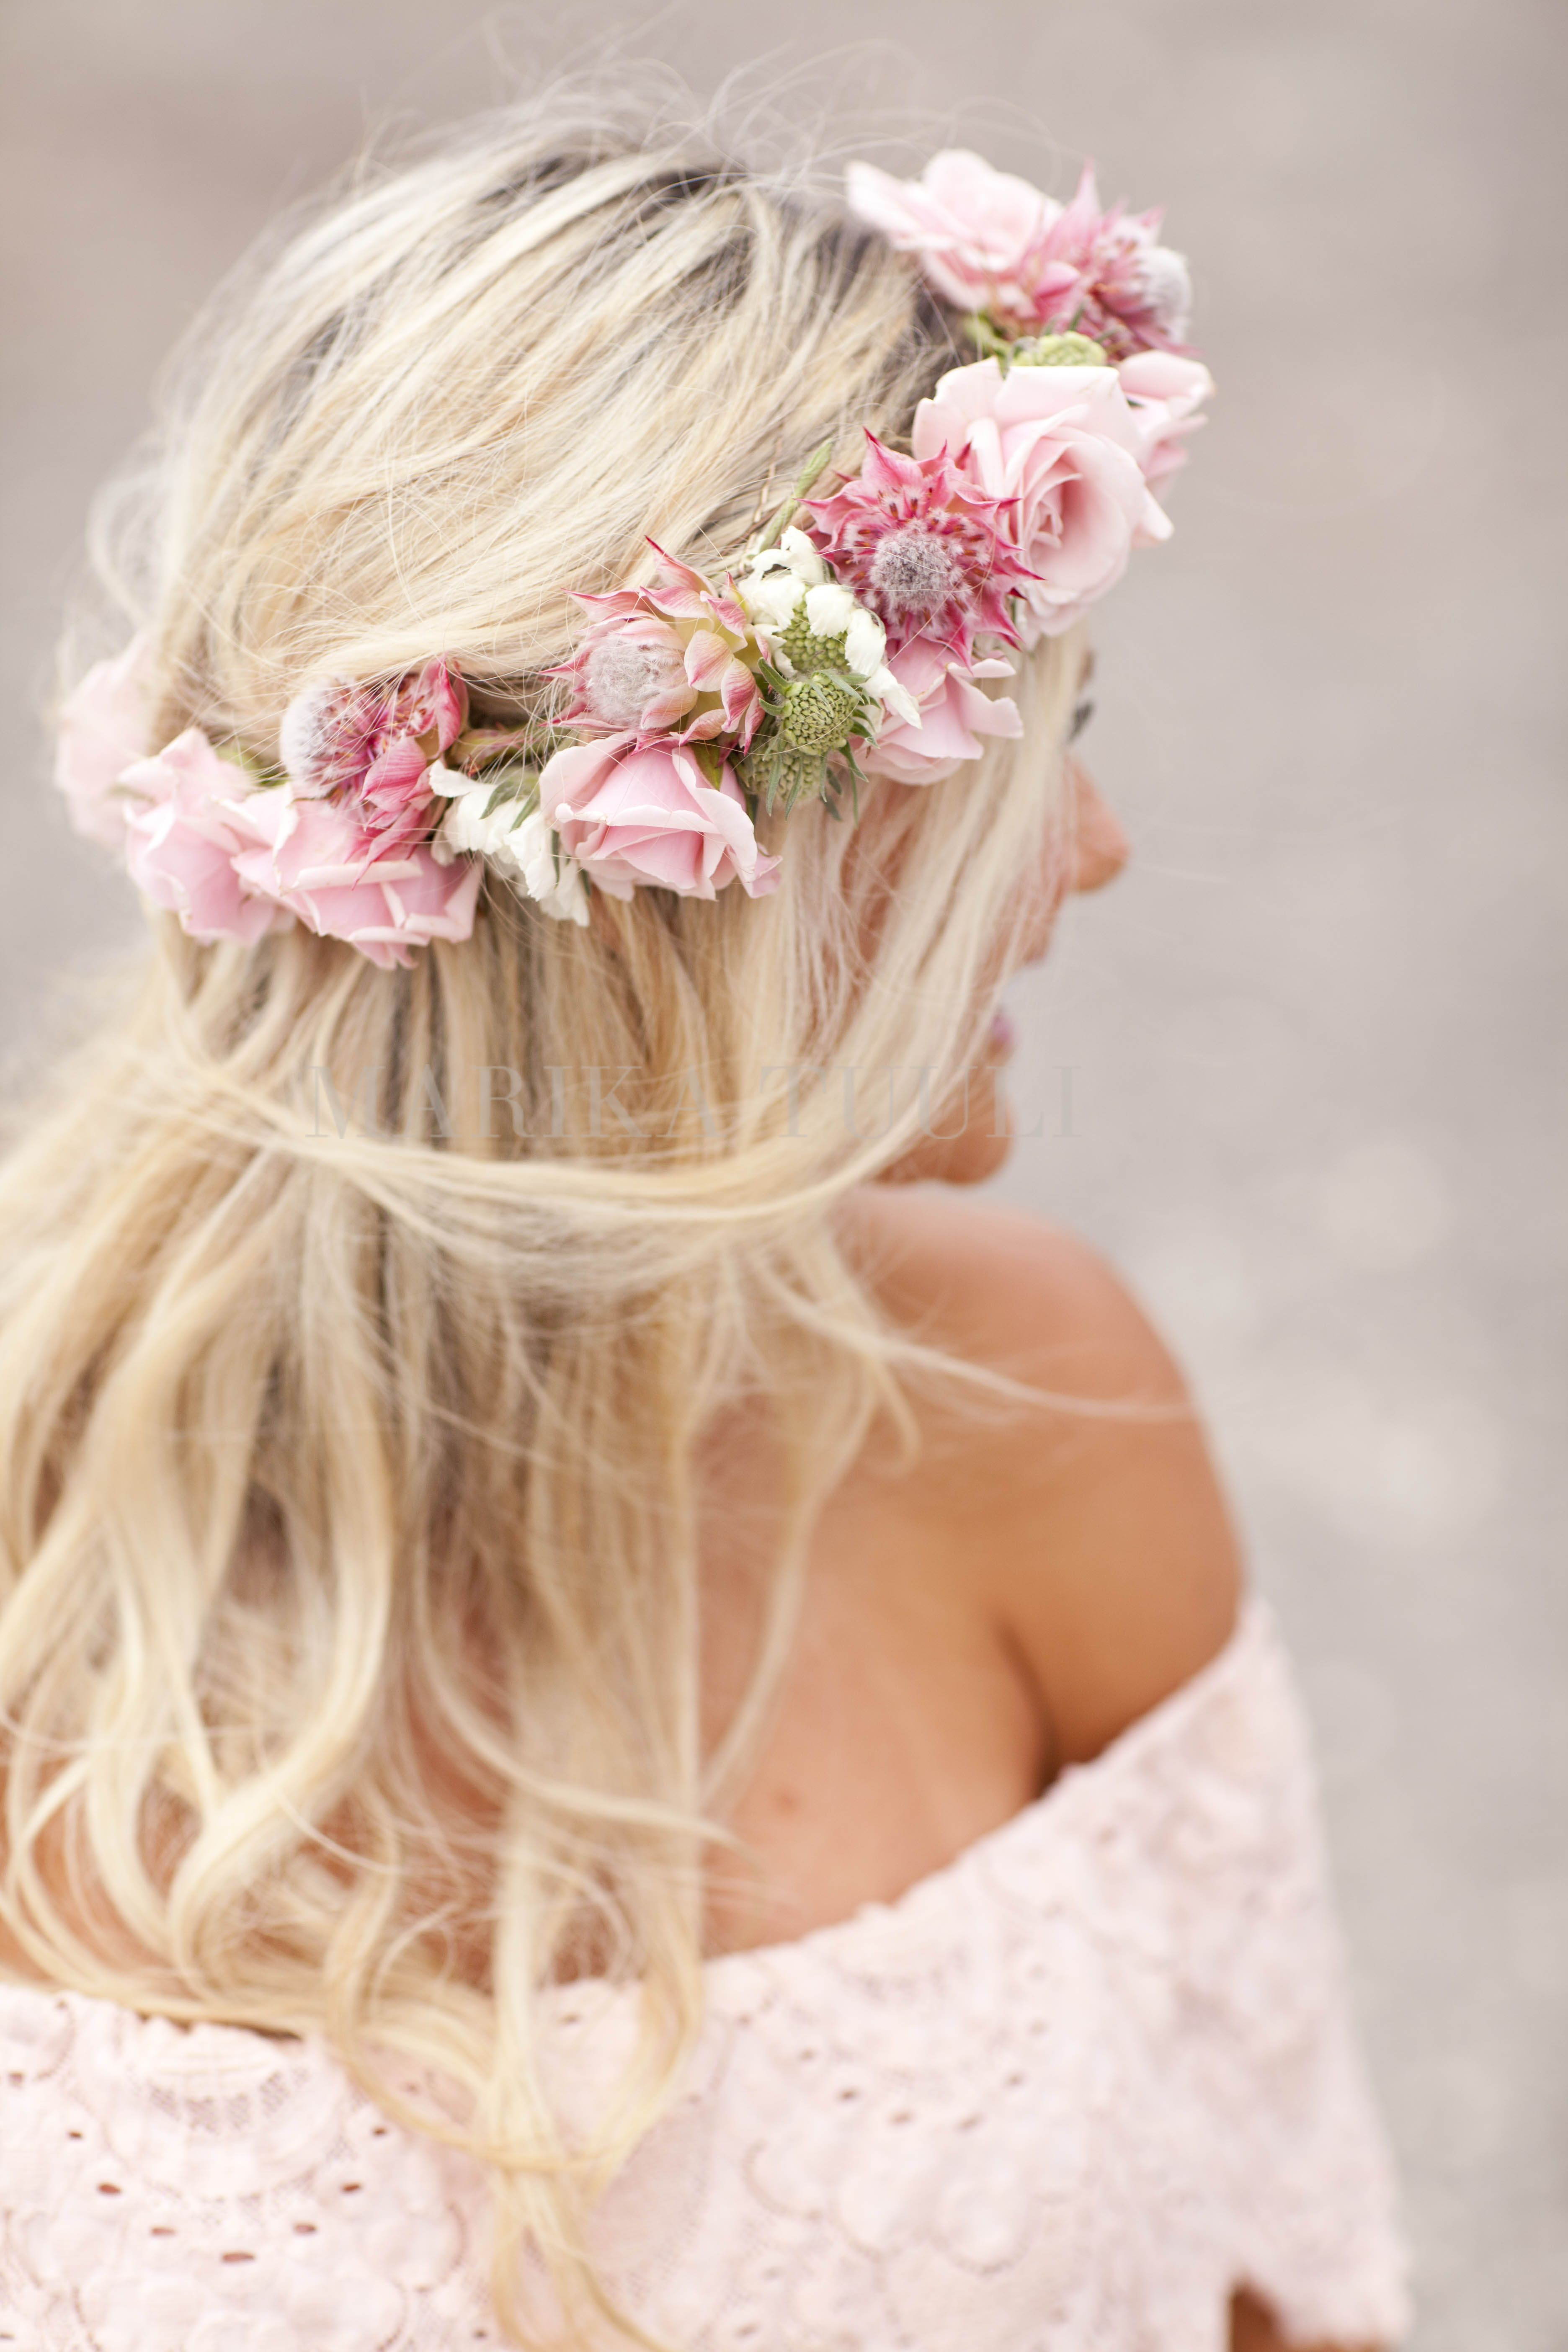 Flower Crown Maternity Photo Pink Flowers Pink Flower Crown Flower Crown Hairstyle Baby Flower Crown